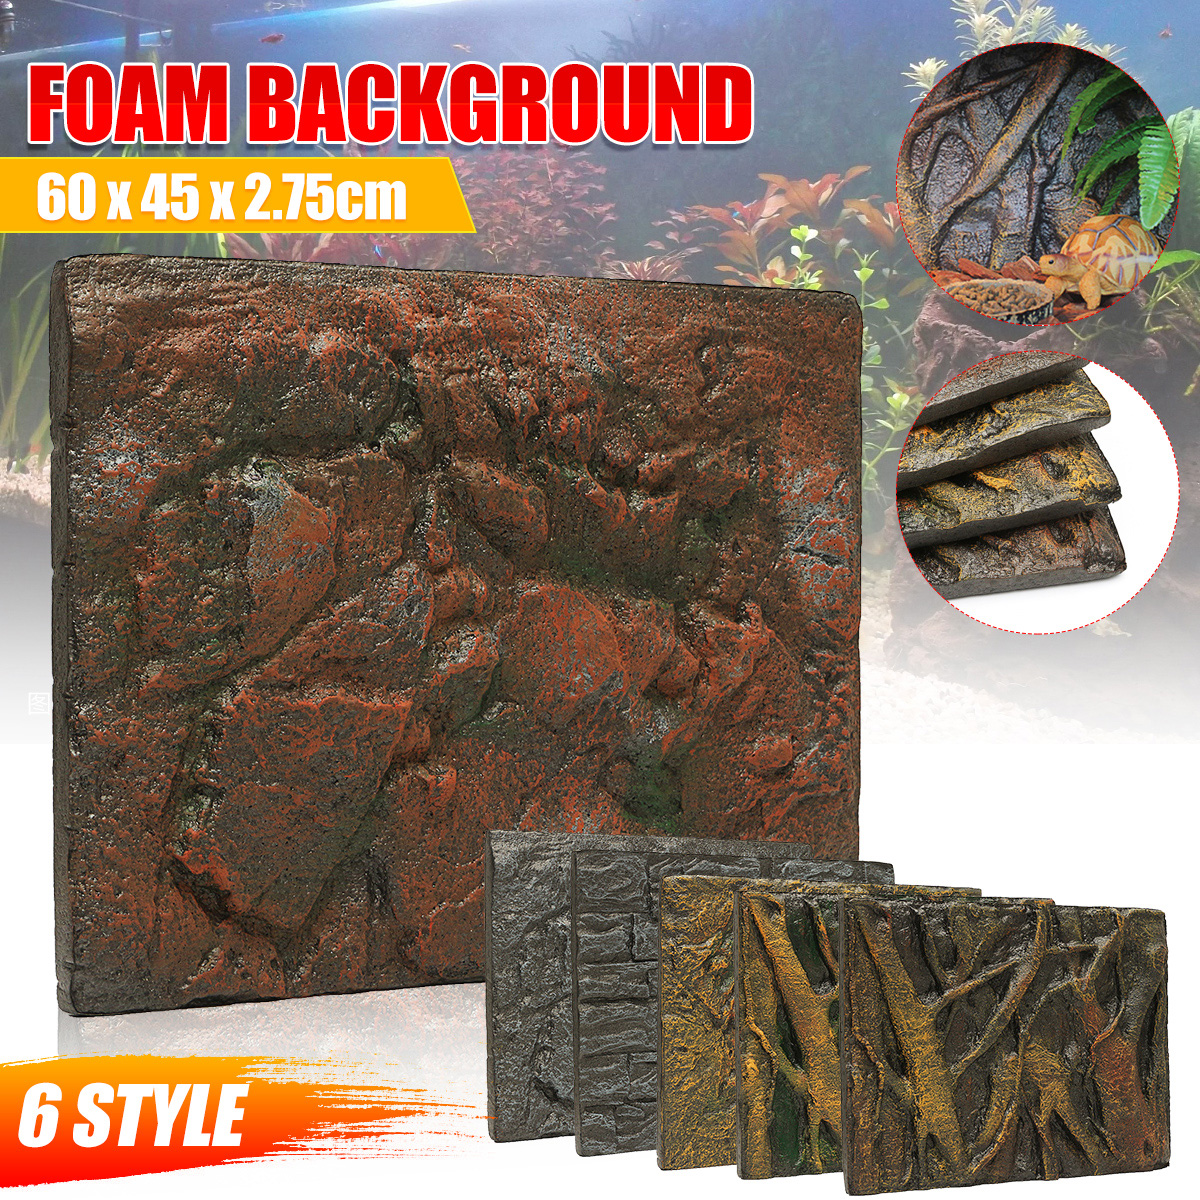 6 Types 3D Foam Rock Reptile Stone Aquarium Background Backdrop Fish Tank Board Decor Wholesale PU Leather Foam 60x45x3cm